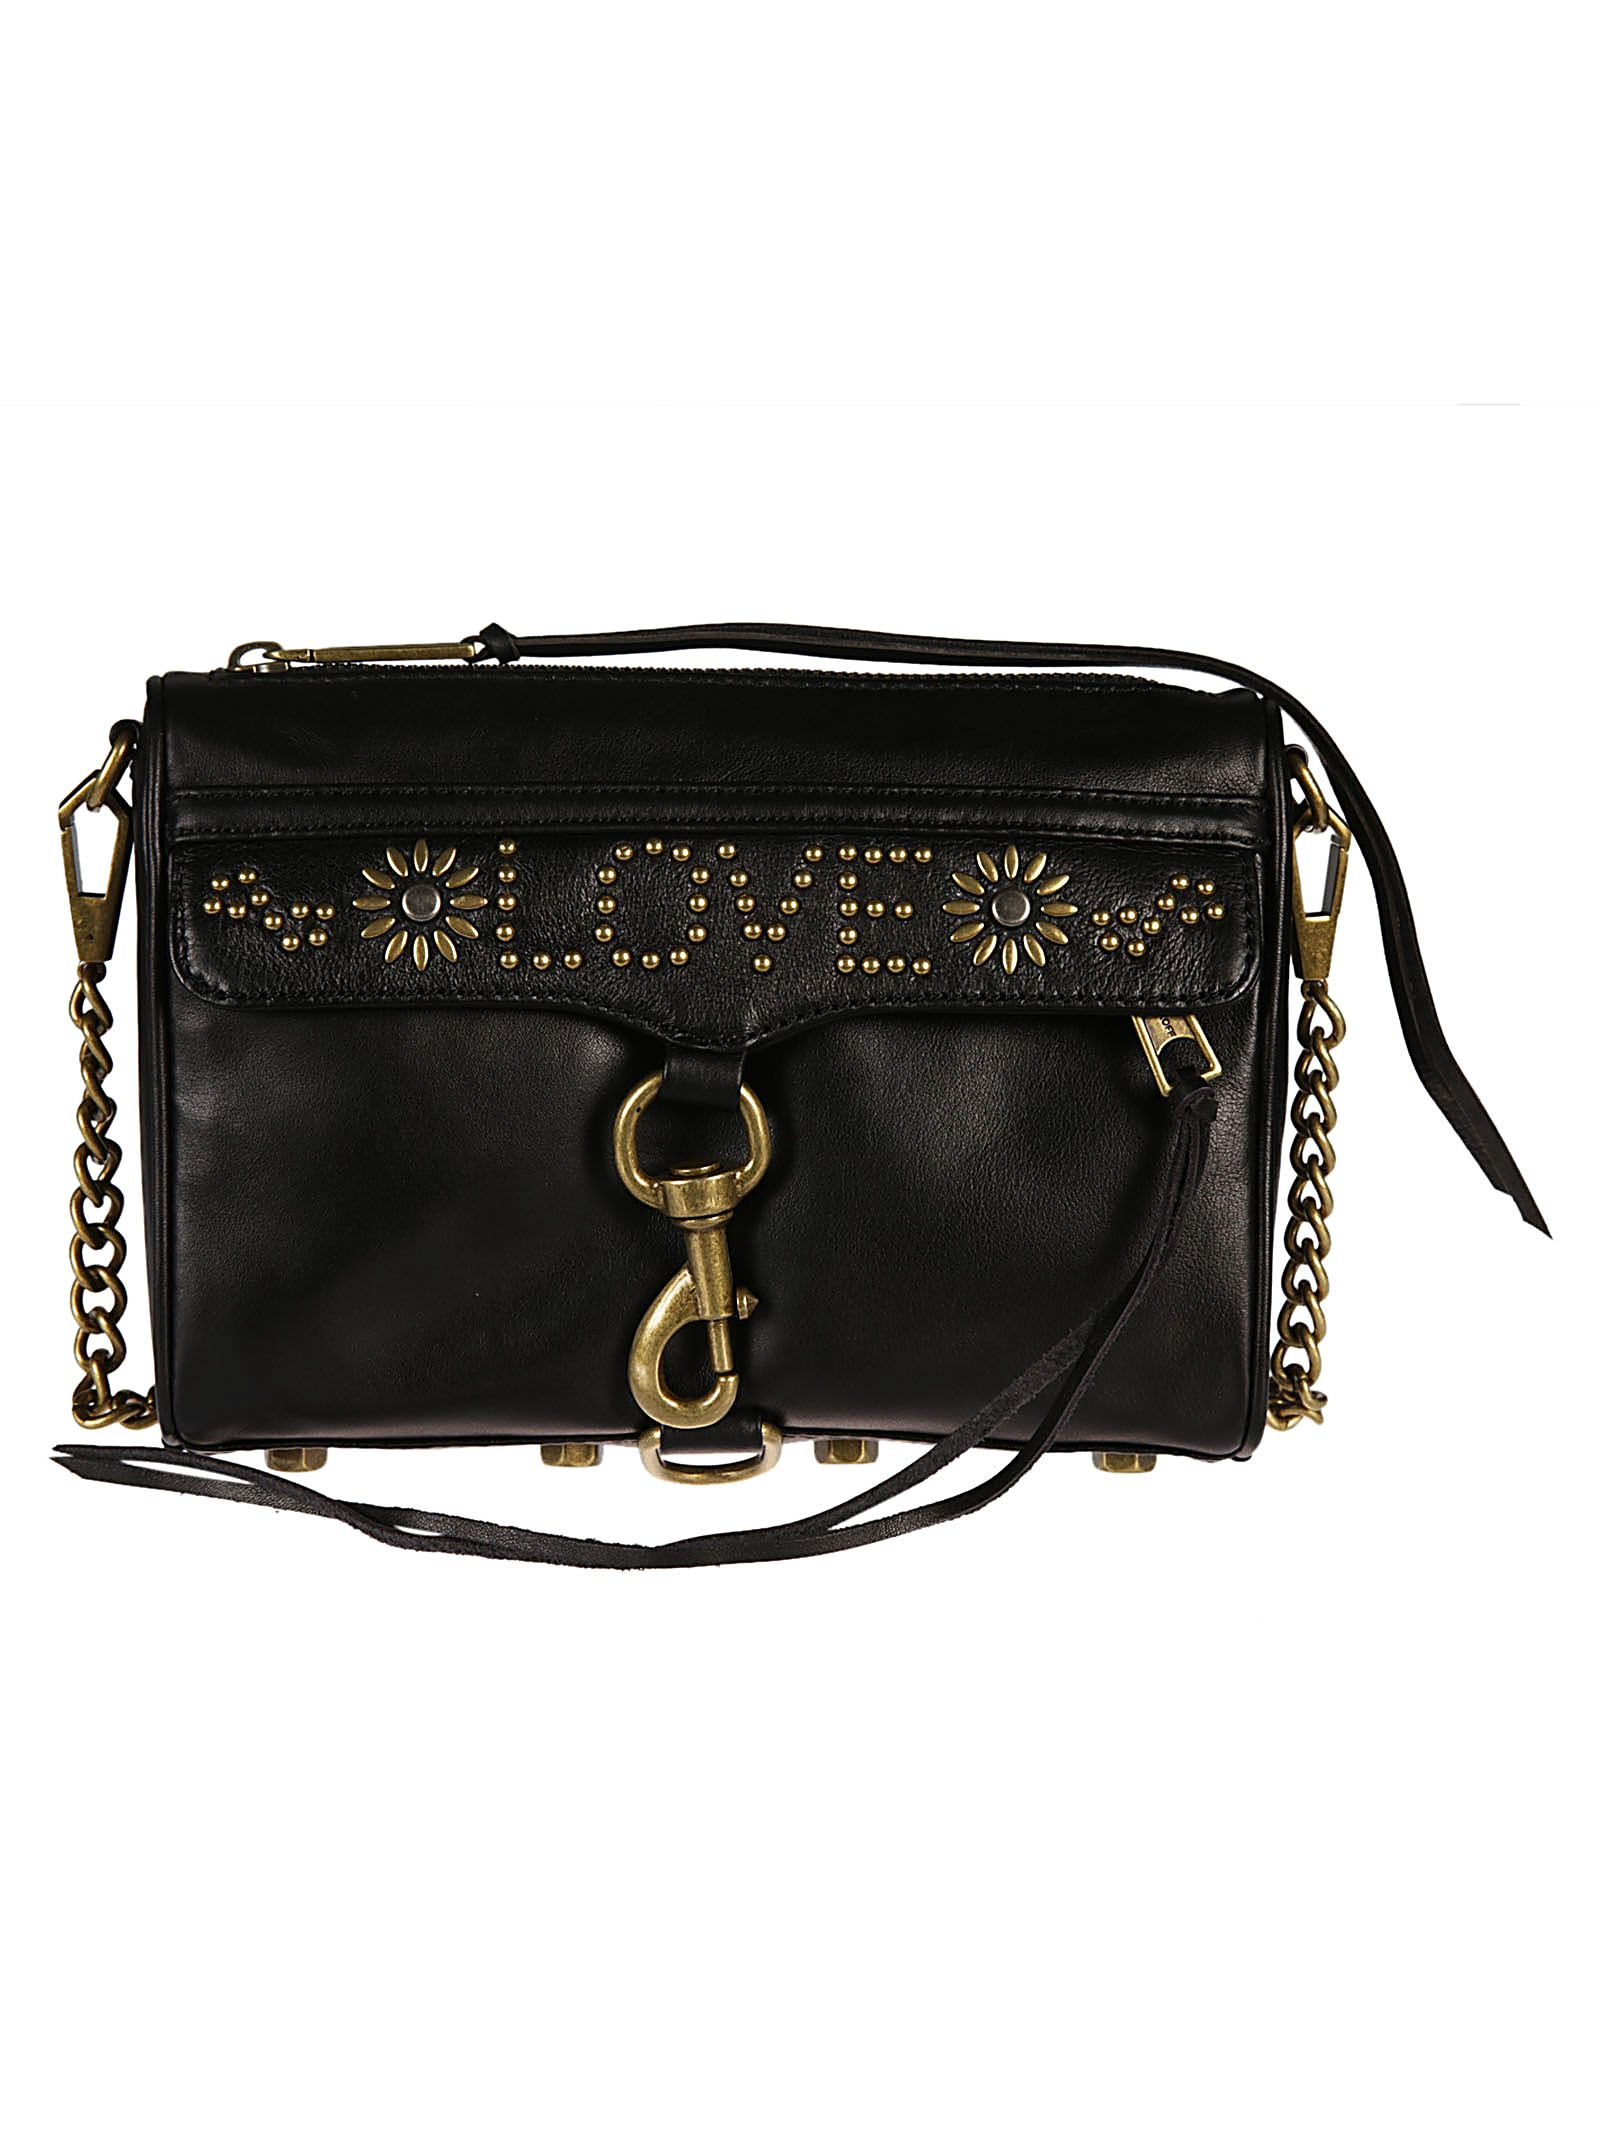 Rebecca Minkoff Love M.a.c. Crossbody Bag